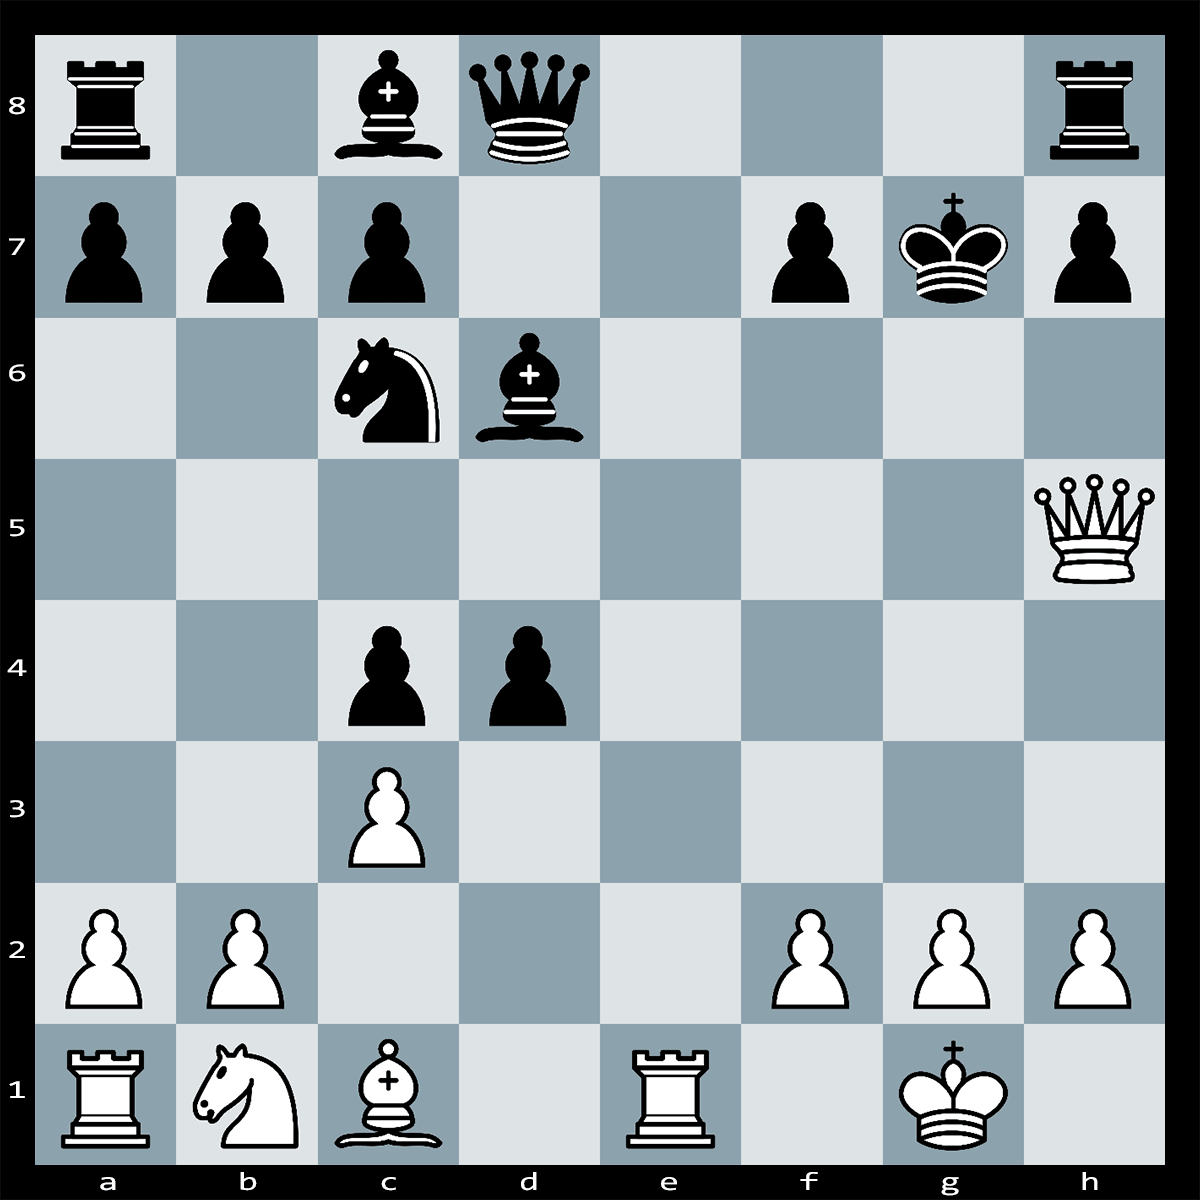 Mate in 4 Moves, White to Play - Chess Puzzle #70